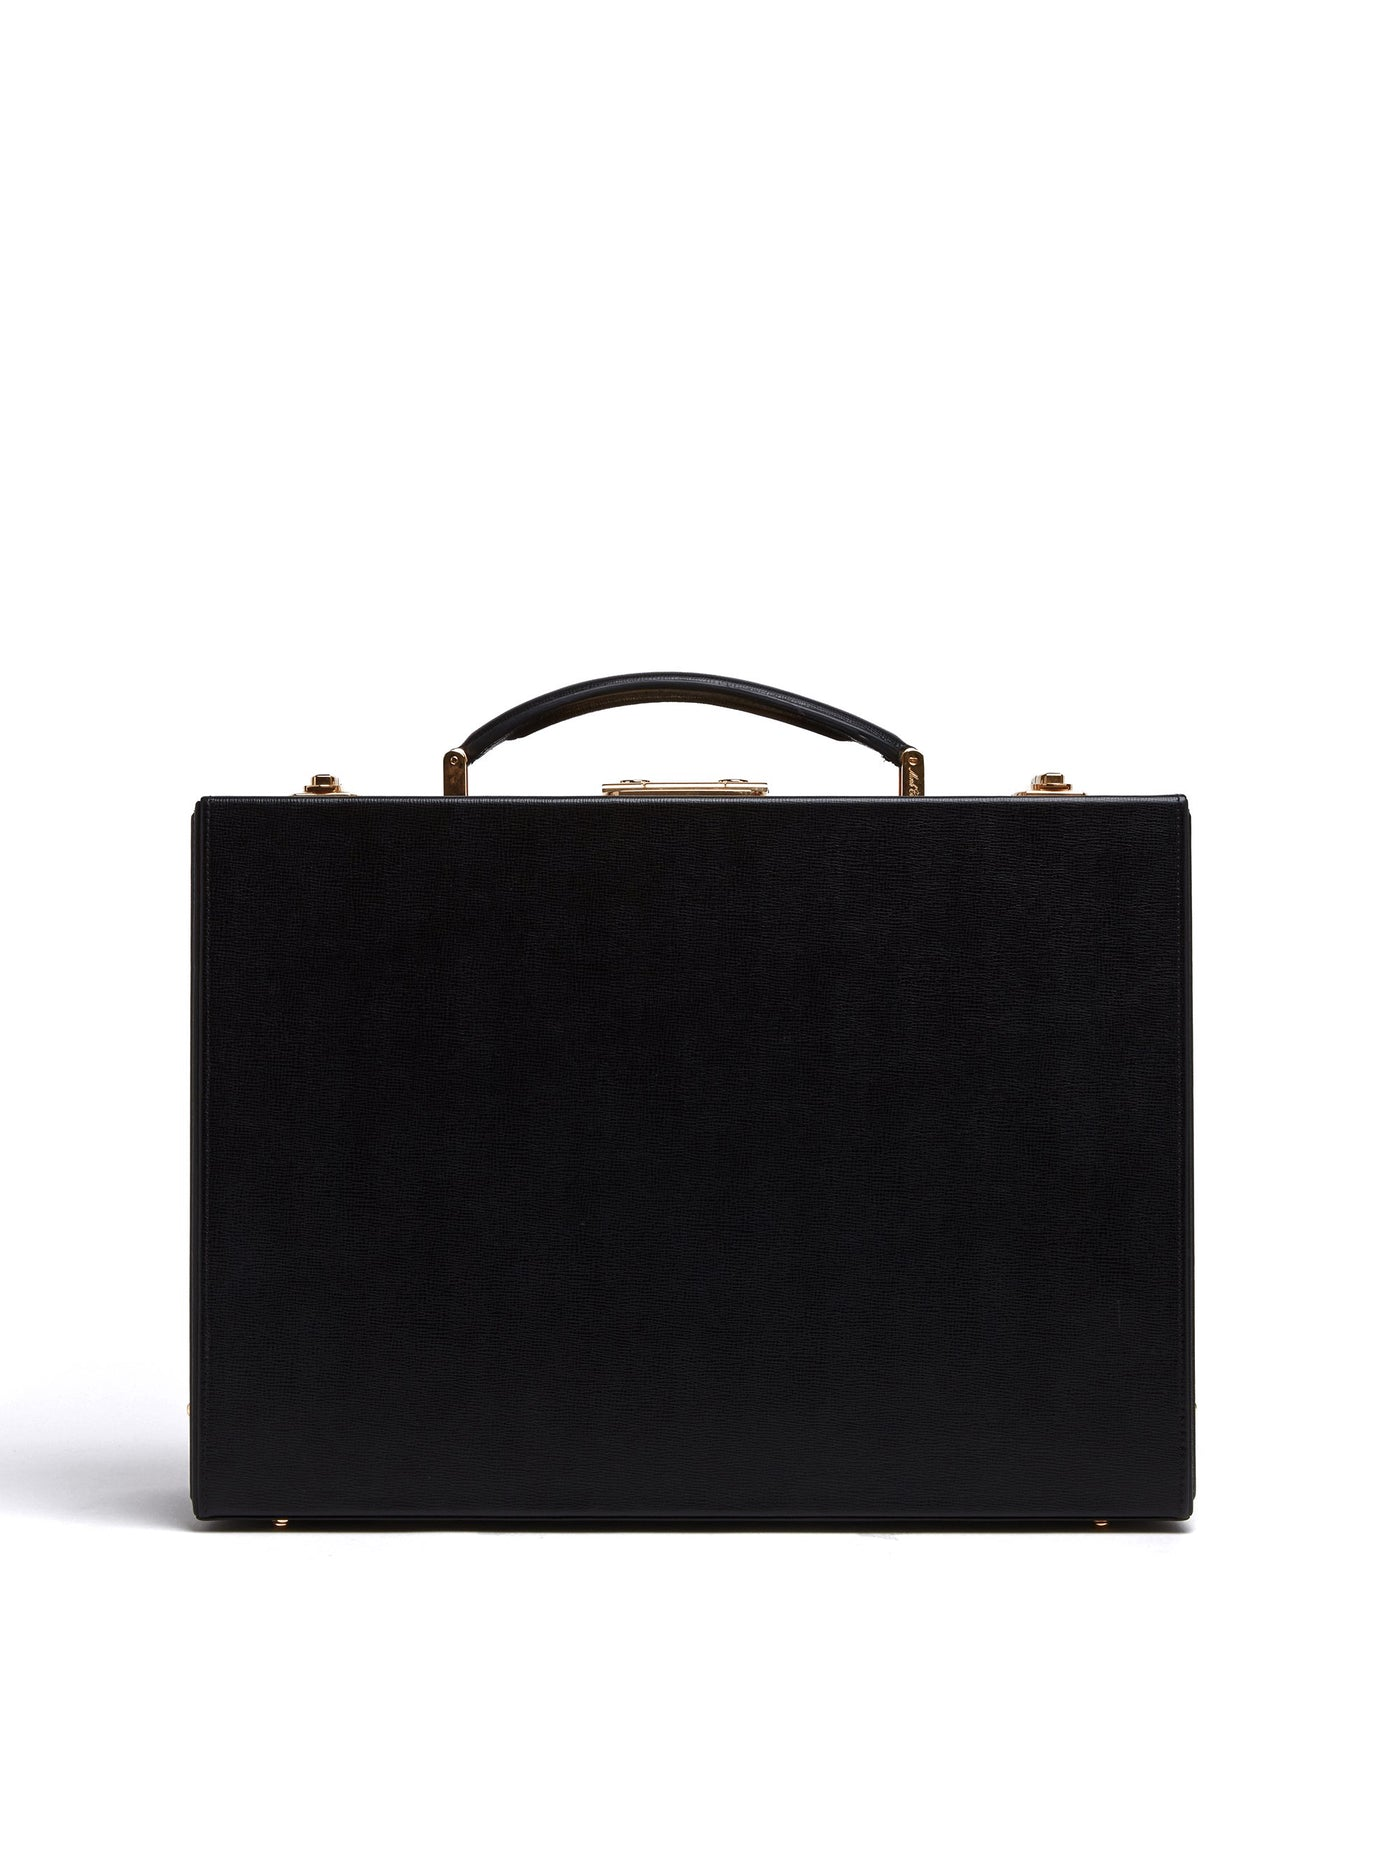 Mark Cross Grace Small Leather Trunk Saffiano Black Front